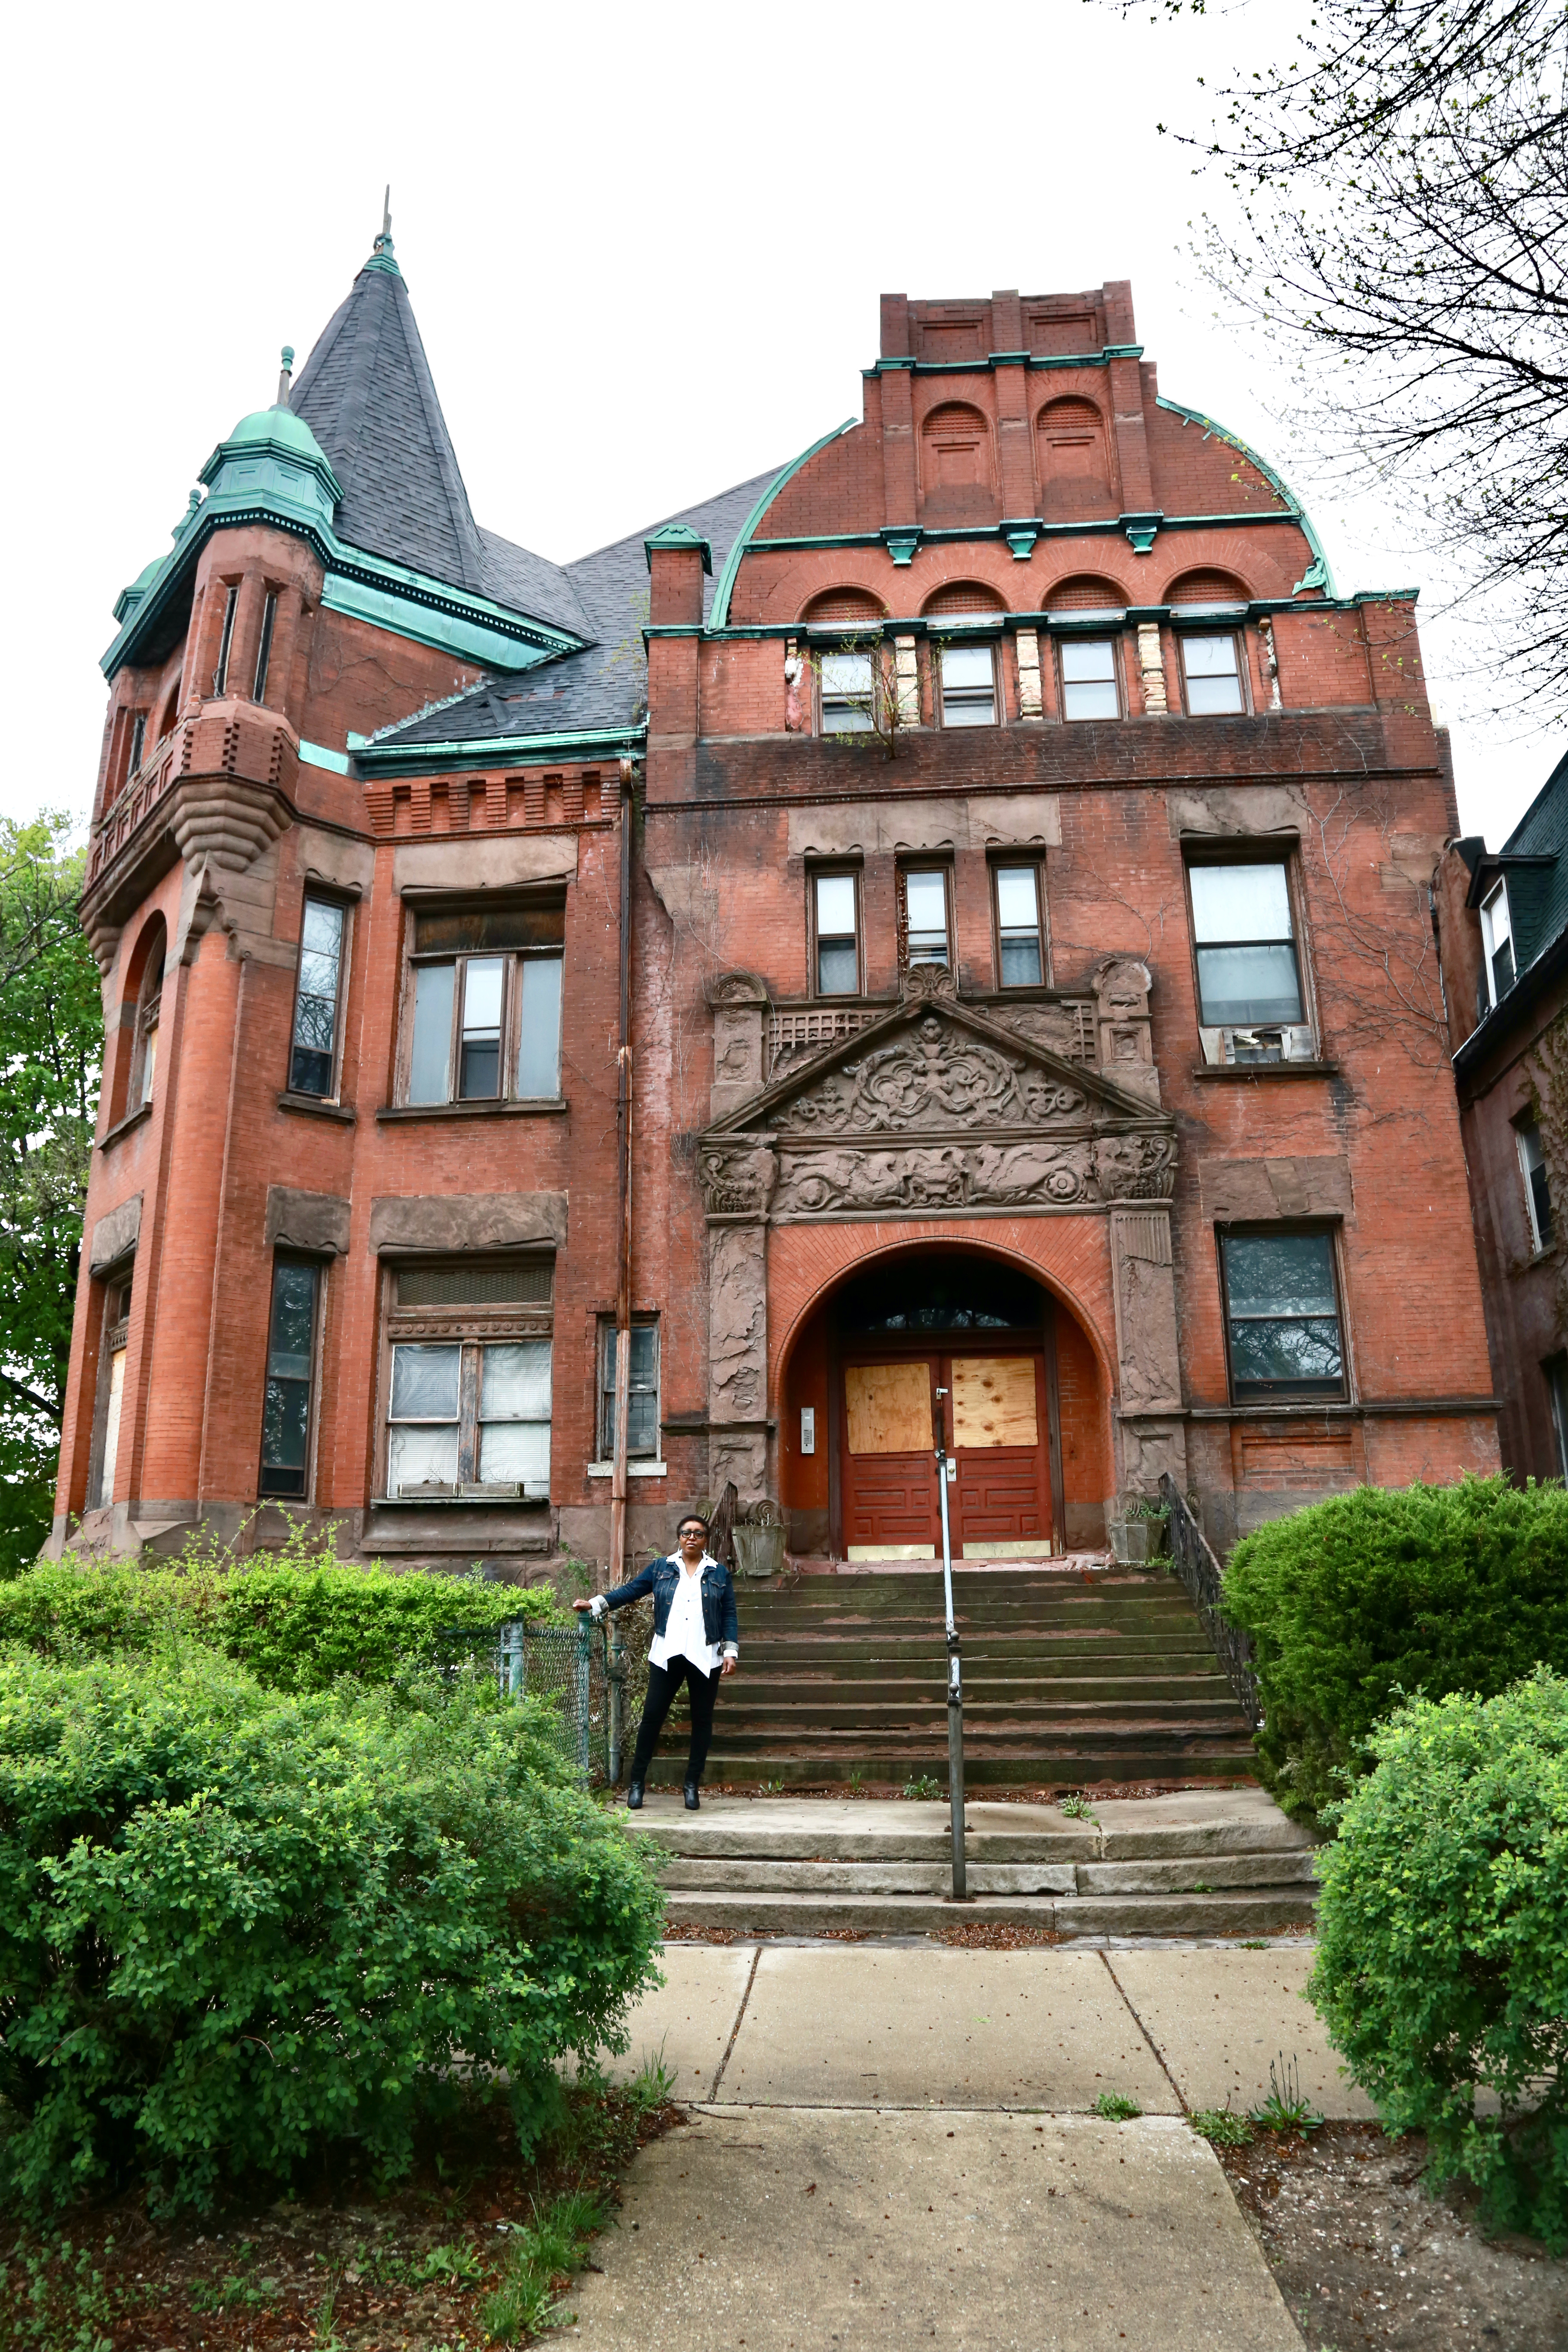 On April 22, Angela Ford of The Obsidian Collection closed on a $1.25 million loan to become new owner of Bronzeville's long vacant historic Lu Palmer Mansion. Ford is free to establish a museum, library and archive there, and is frustrated by the process to obtain a zoning change from the alderman to rent meeting space and offer modest retail.